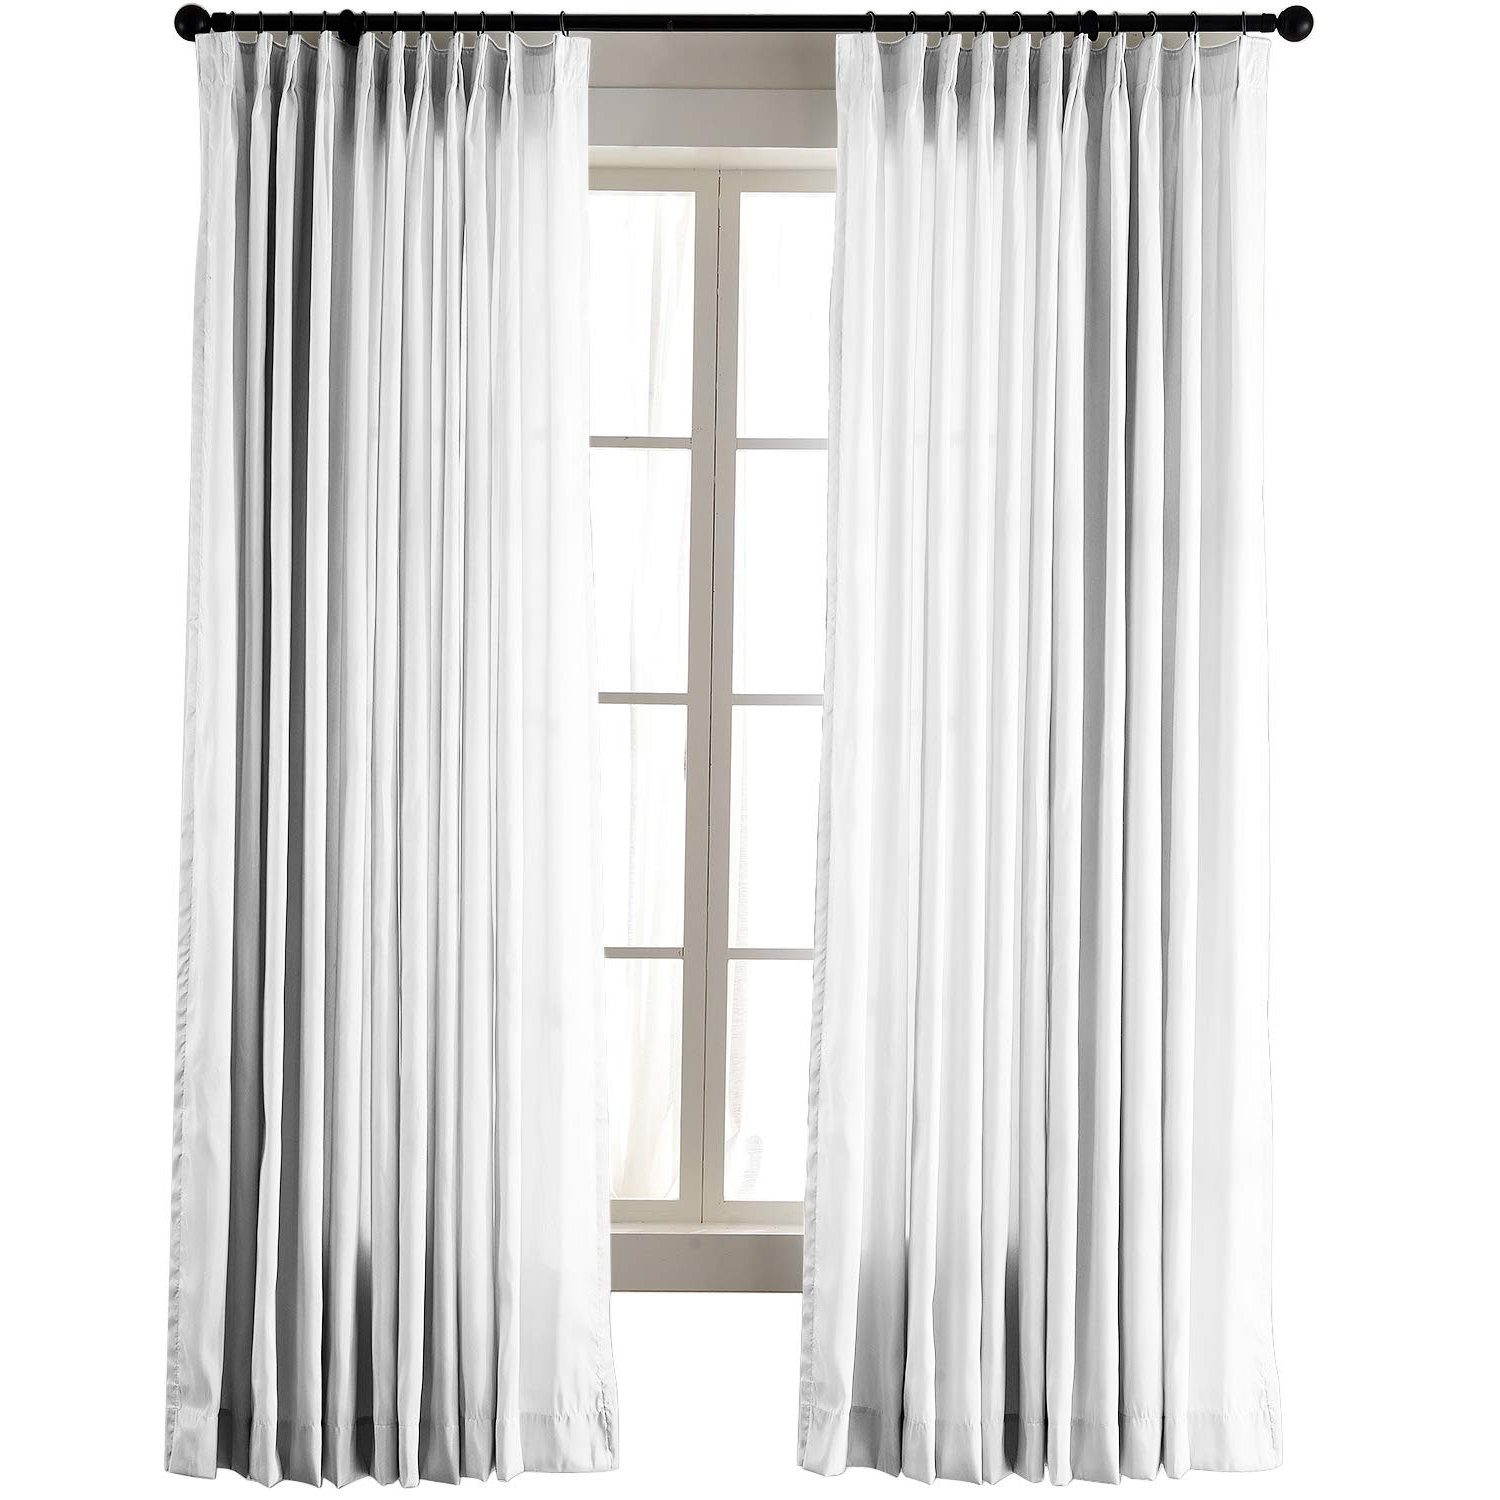 "Chadmade Vintage Textured Extra Length Faux Dupioni Silk Drape Curtain  Panel Pinch Pleated 50"" W X 108"" L With White Blackout Lined, White Ivory For Most Recently Released Ice White Vintage Faux Textured Silk Curtain Panels (View 3 of 20)"